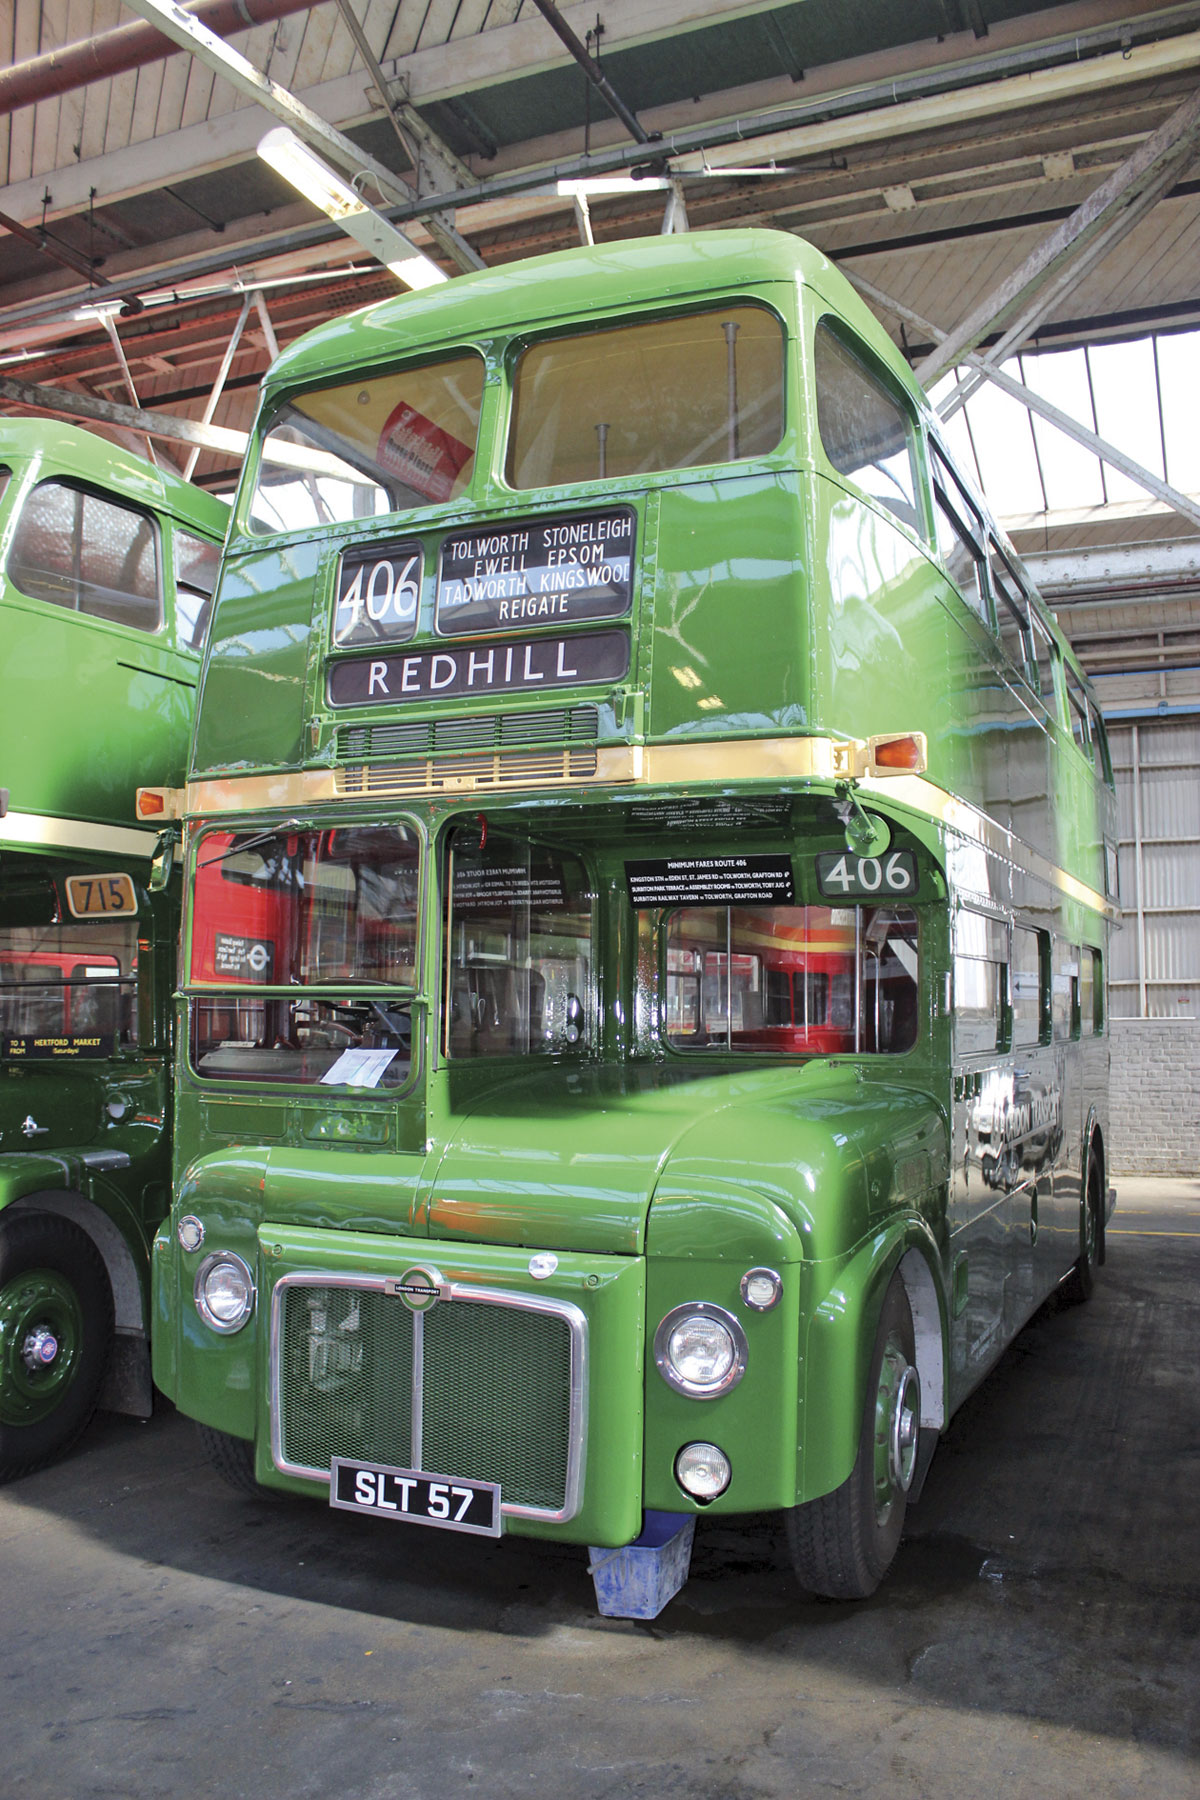 The prototype green country area Routemaster